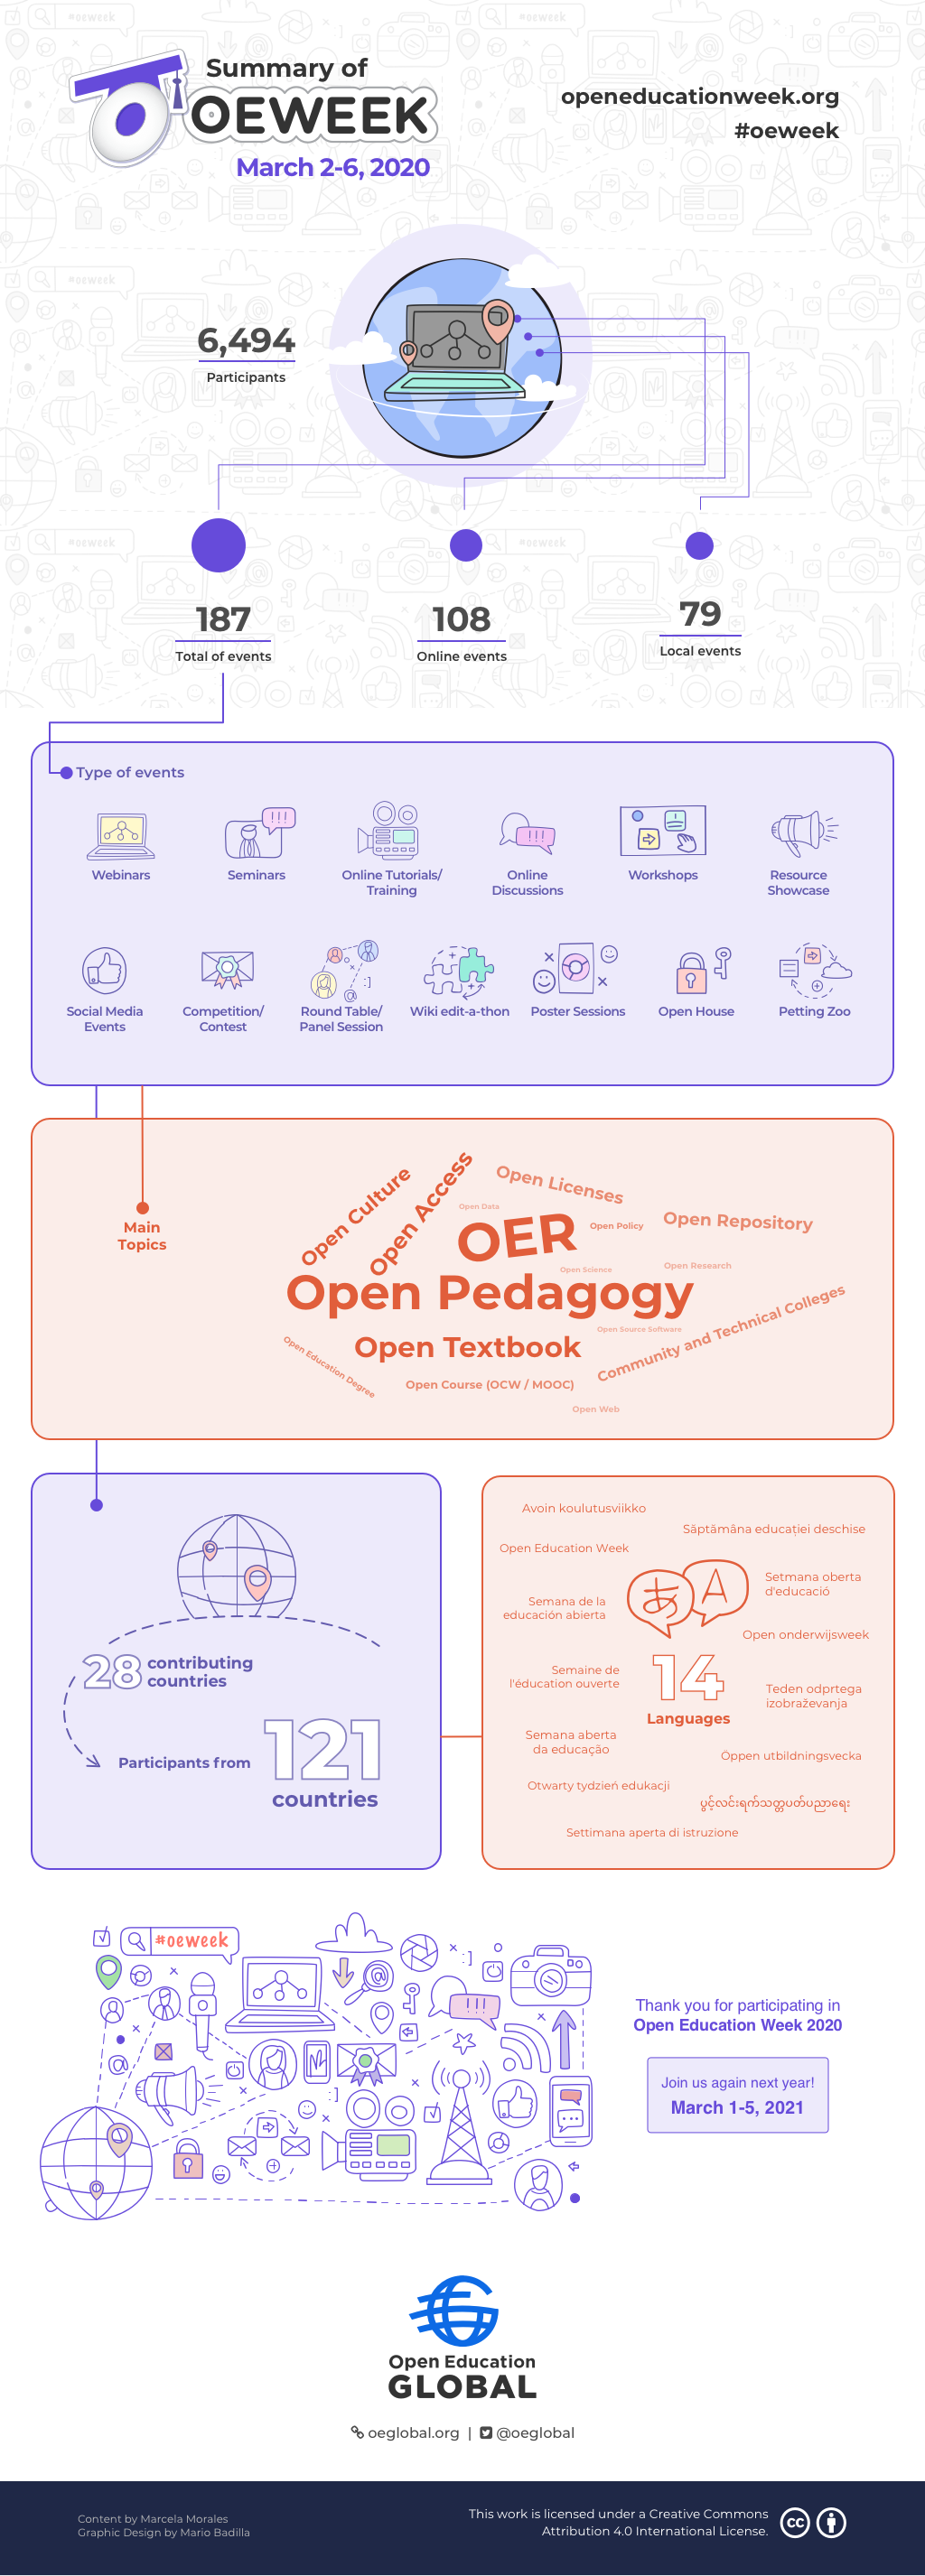 Open Education Week 2020 Summary